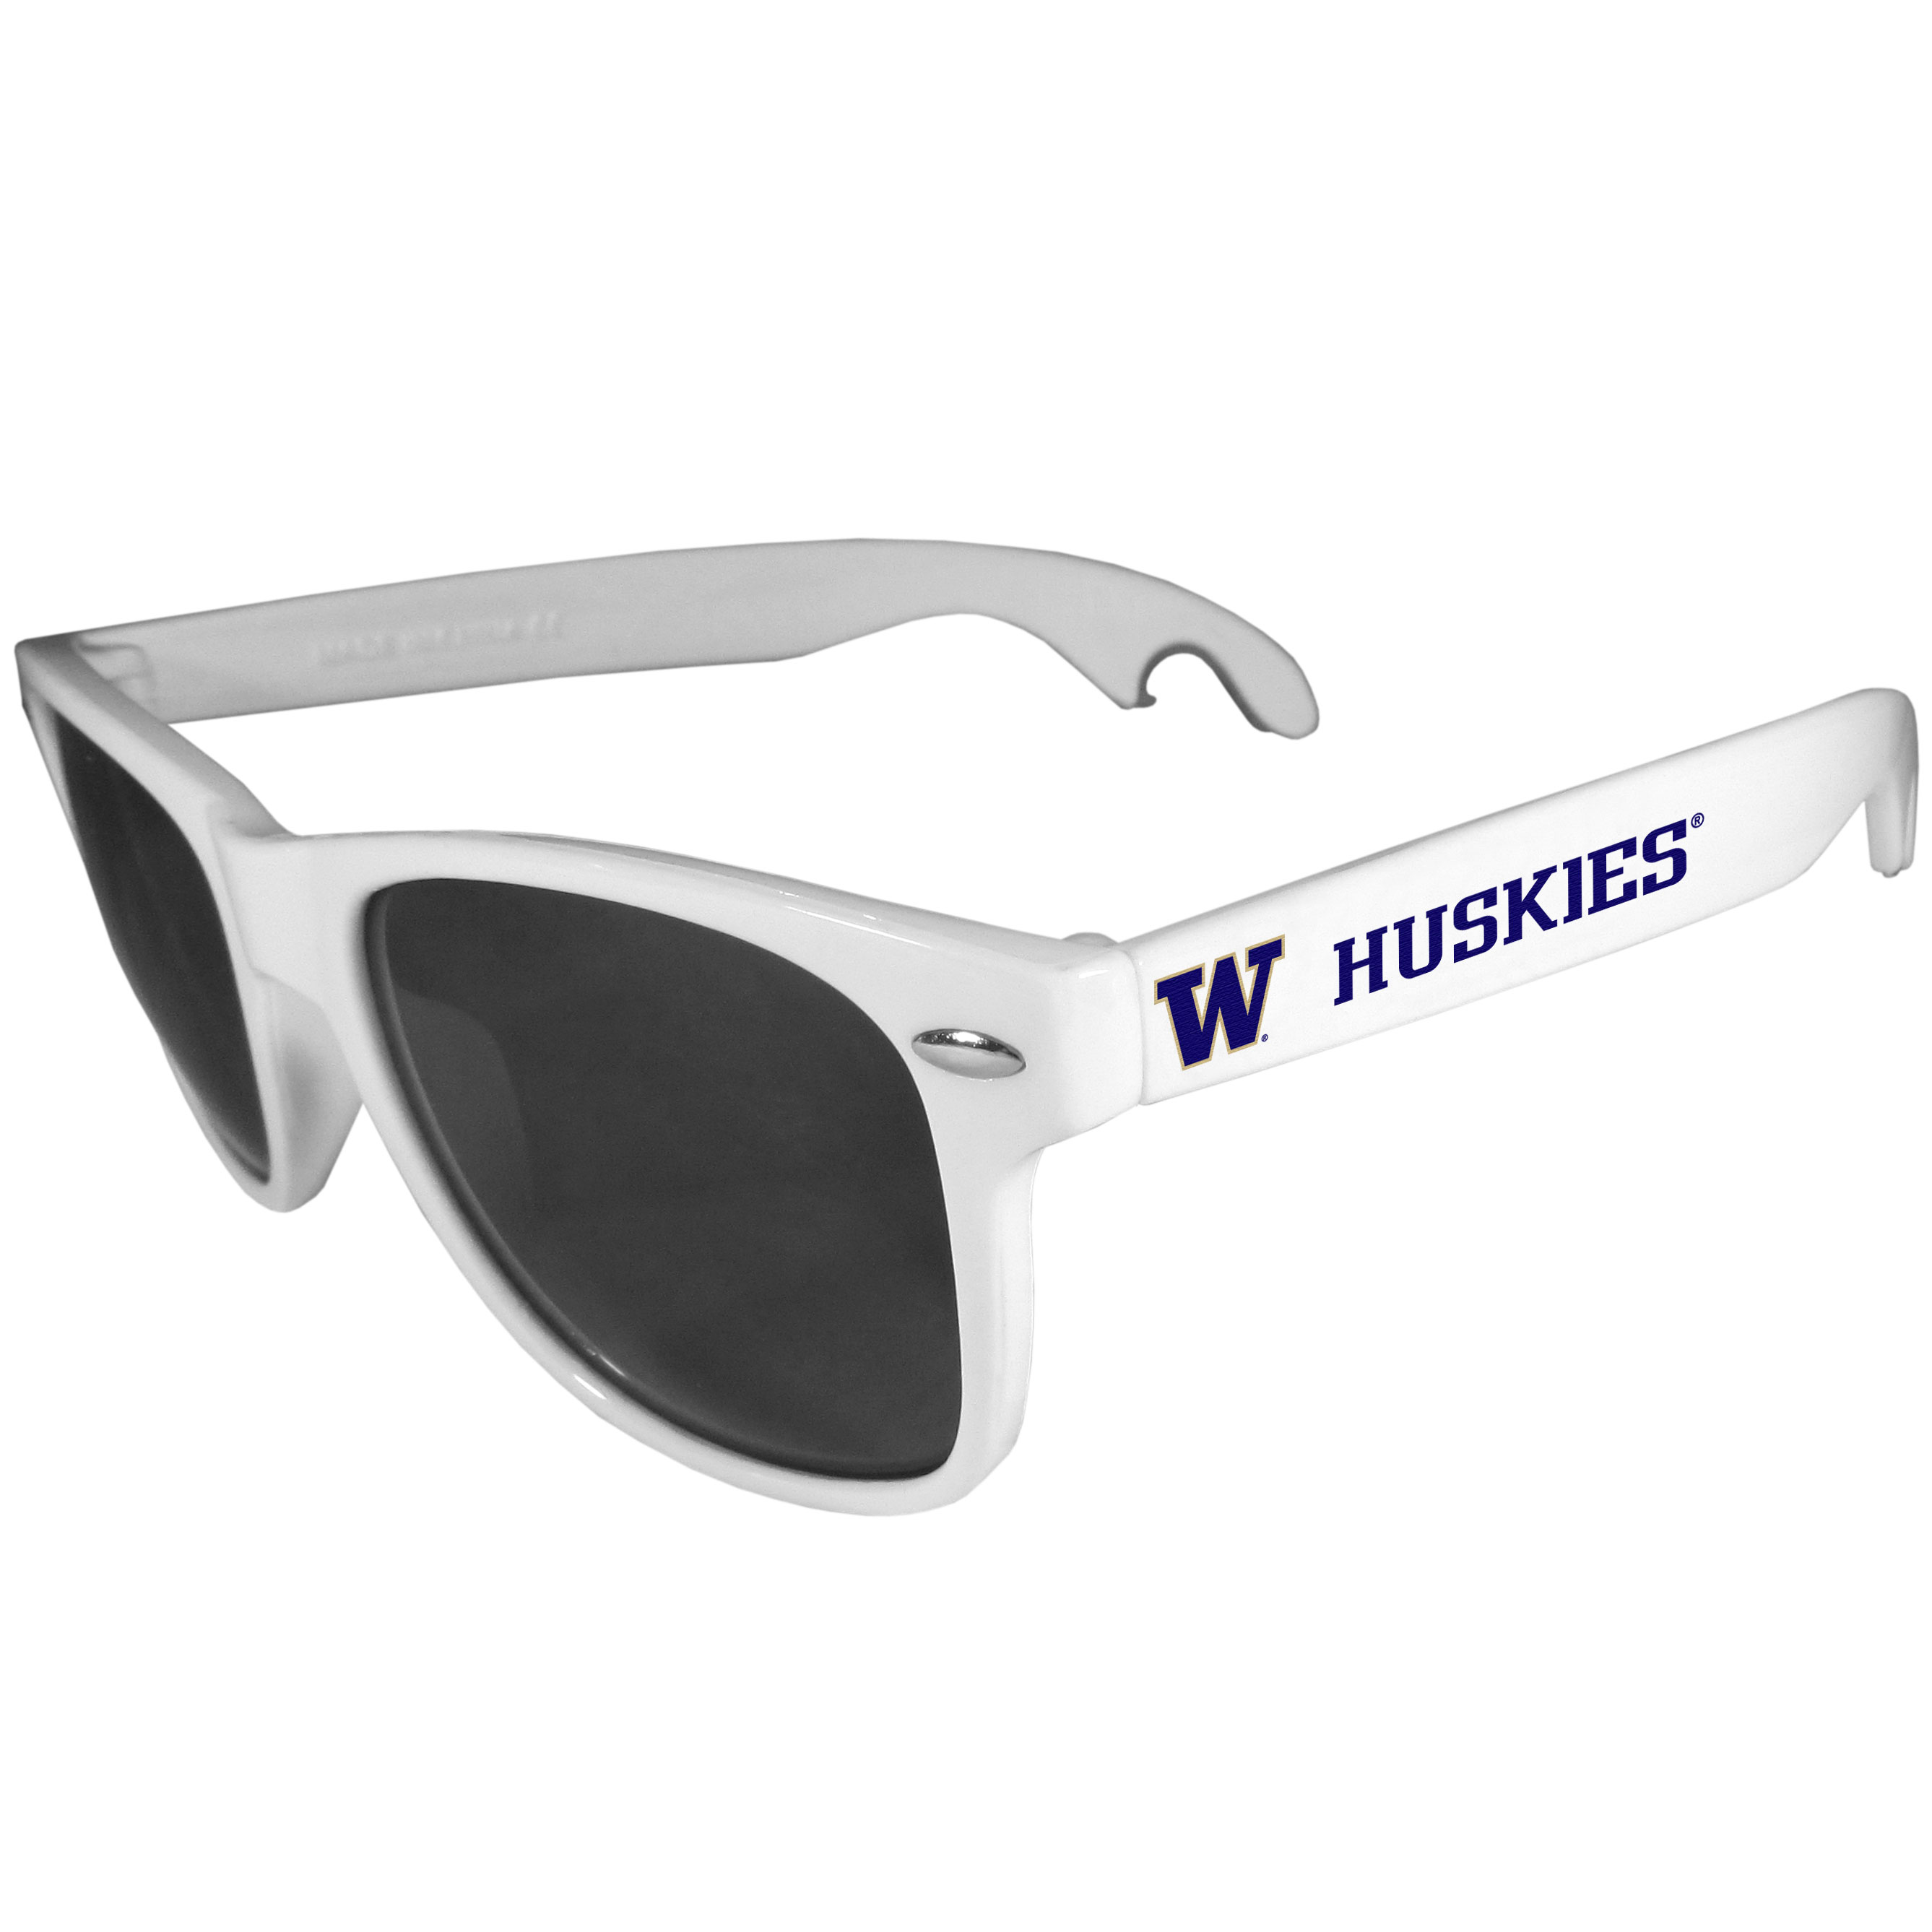 Washington Huskies Beachfarer Bottle Opener Sunglasses, White - Seriously, these sunglasses open bottles! Keep the party going with these amazing Washington Huskies bottle opener sunglasses. The stylish retro frames feature team designs on the arms and functional bottle openers on the end of the arms. Whether you are at the beach or having a backyard BBQ on game day, these shades will keep your eyes protected with 100% UVA/UVB protection and keep you hydrated with the handy bottle opener arms.